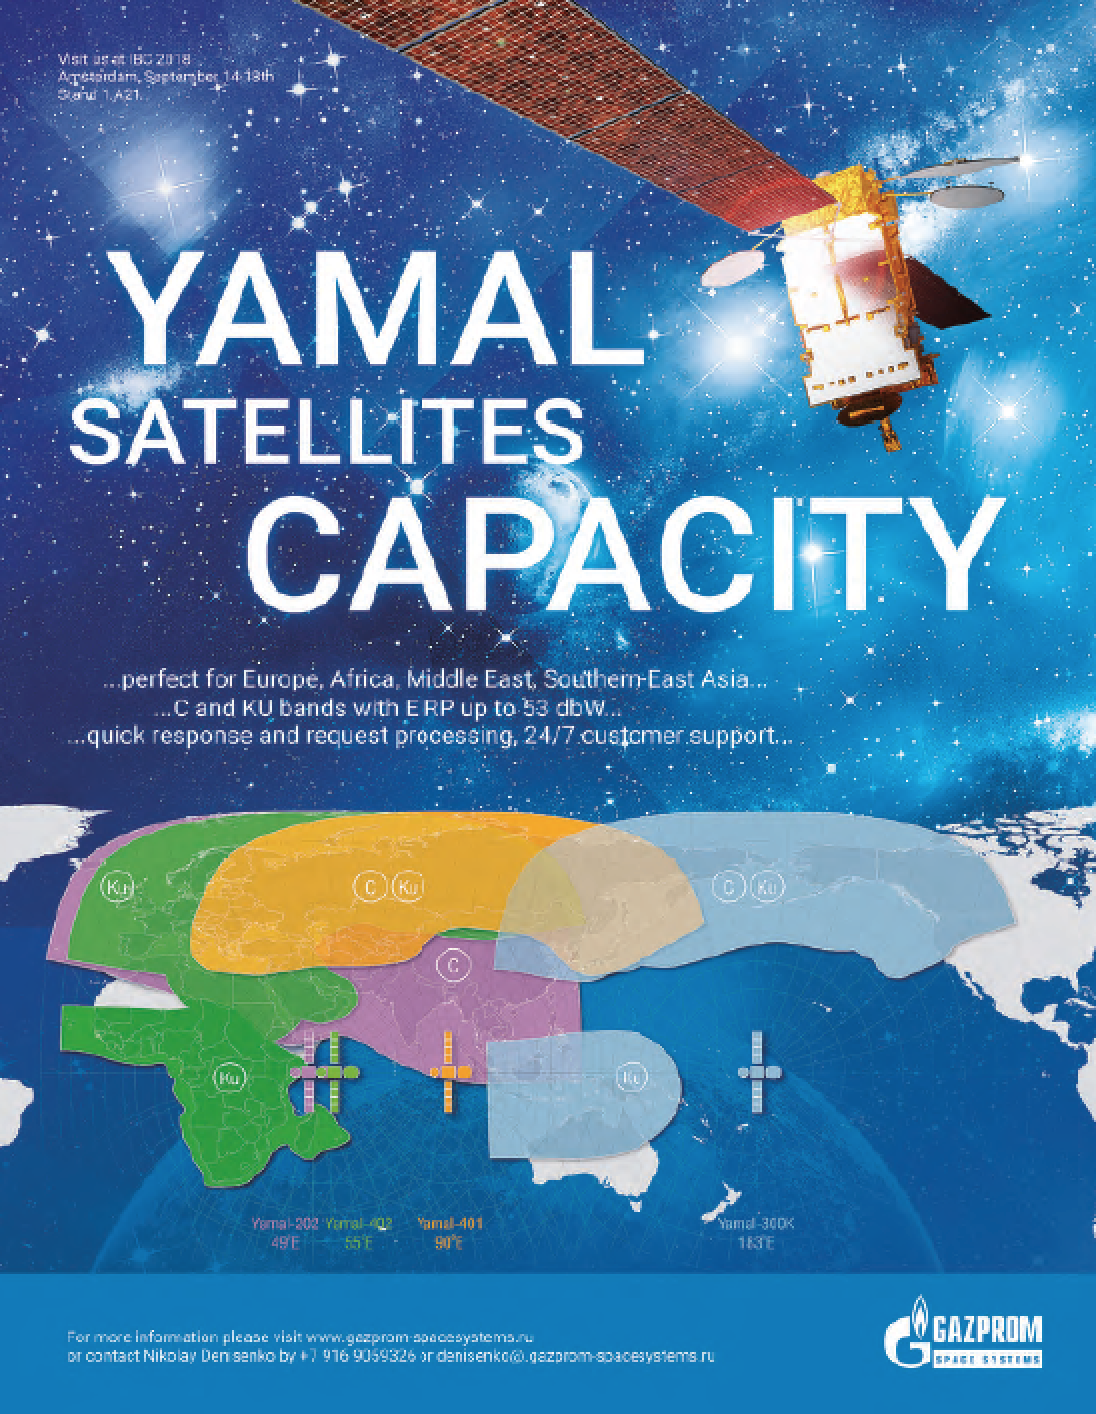 Satellites Capacity